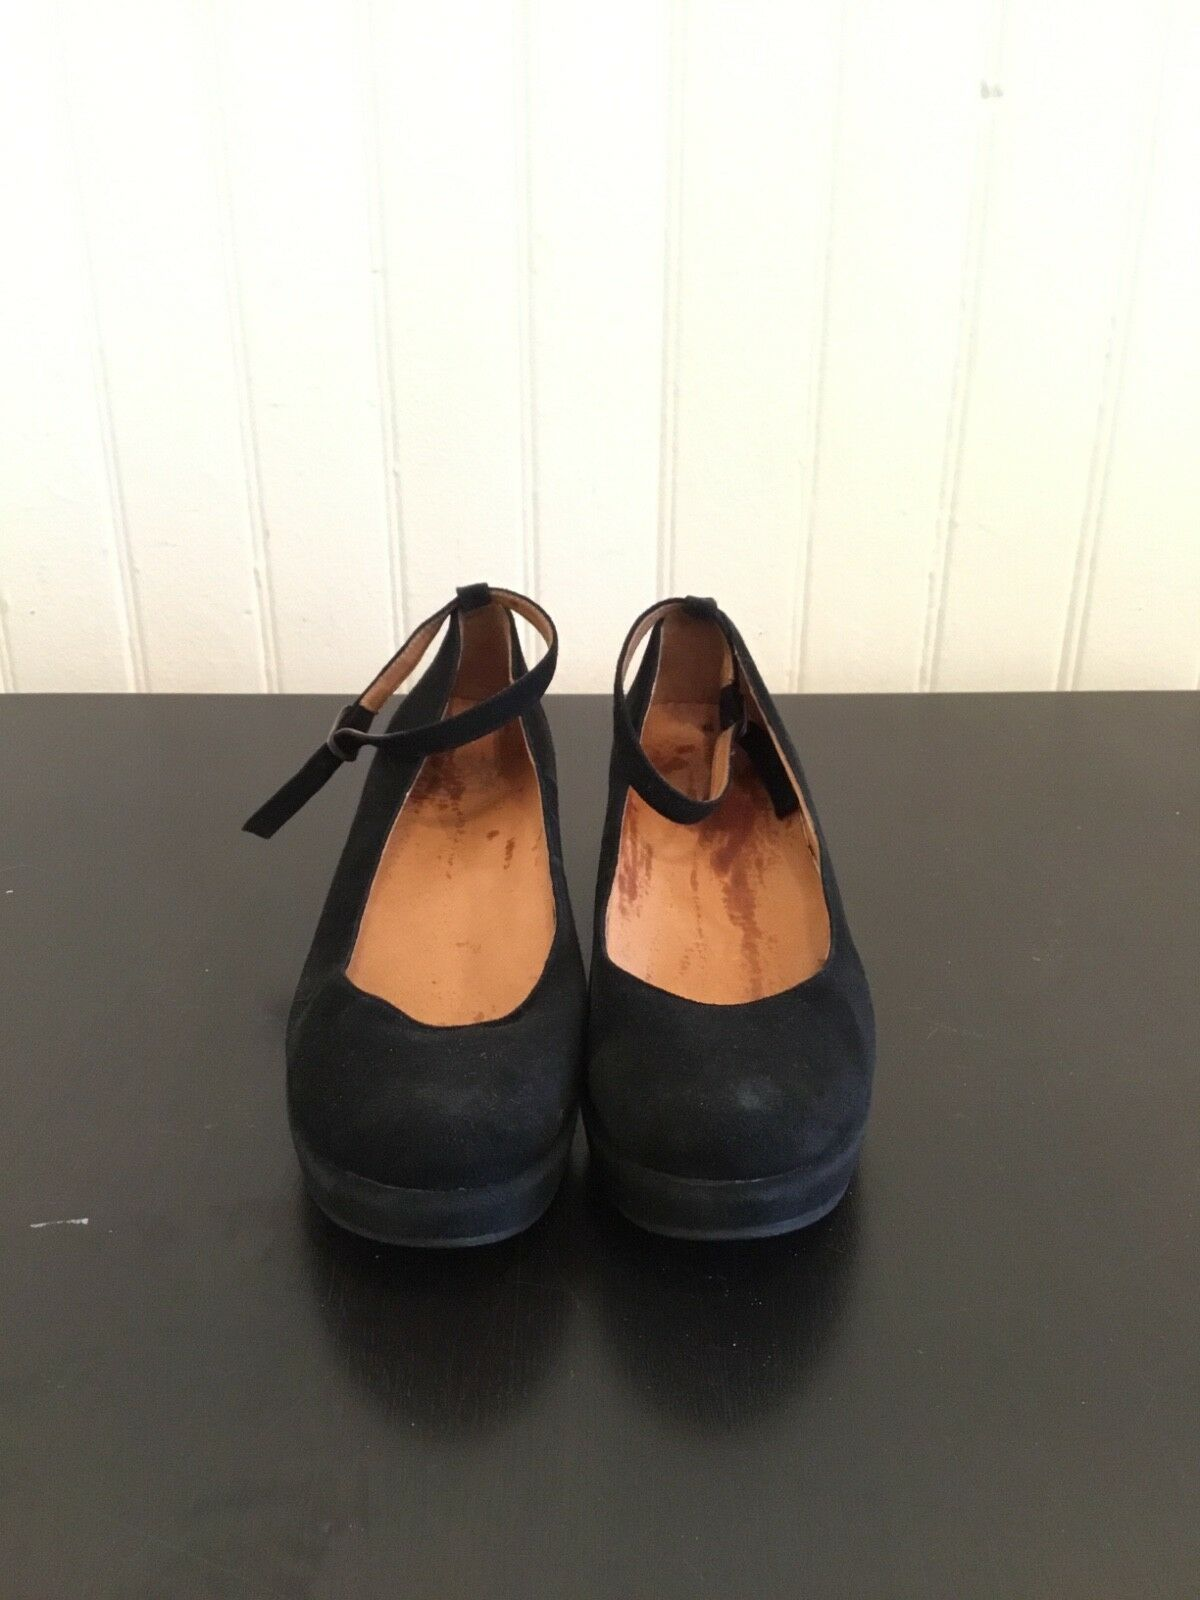 Juicy Couture Black Leather Suede Strappy Strappy Strappy Wedge Heels Size 9 9905a8